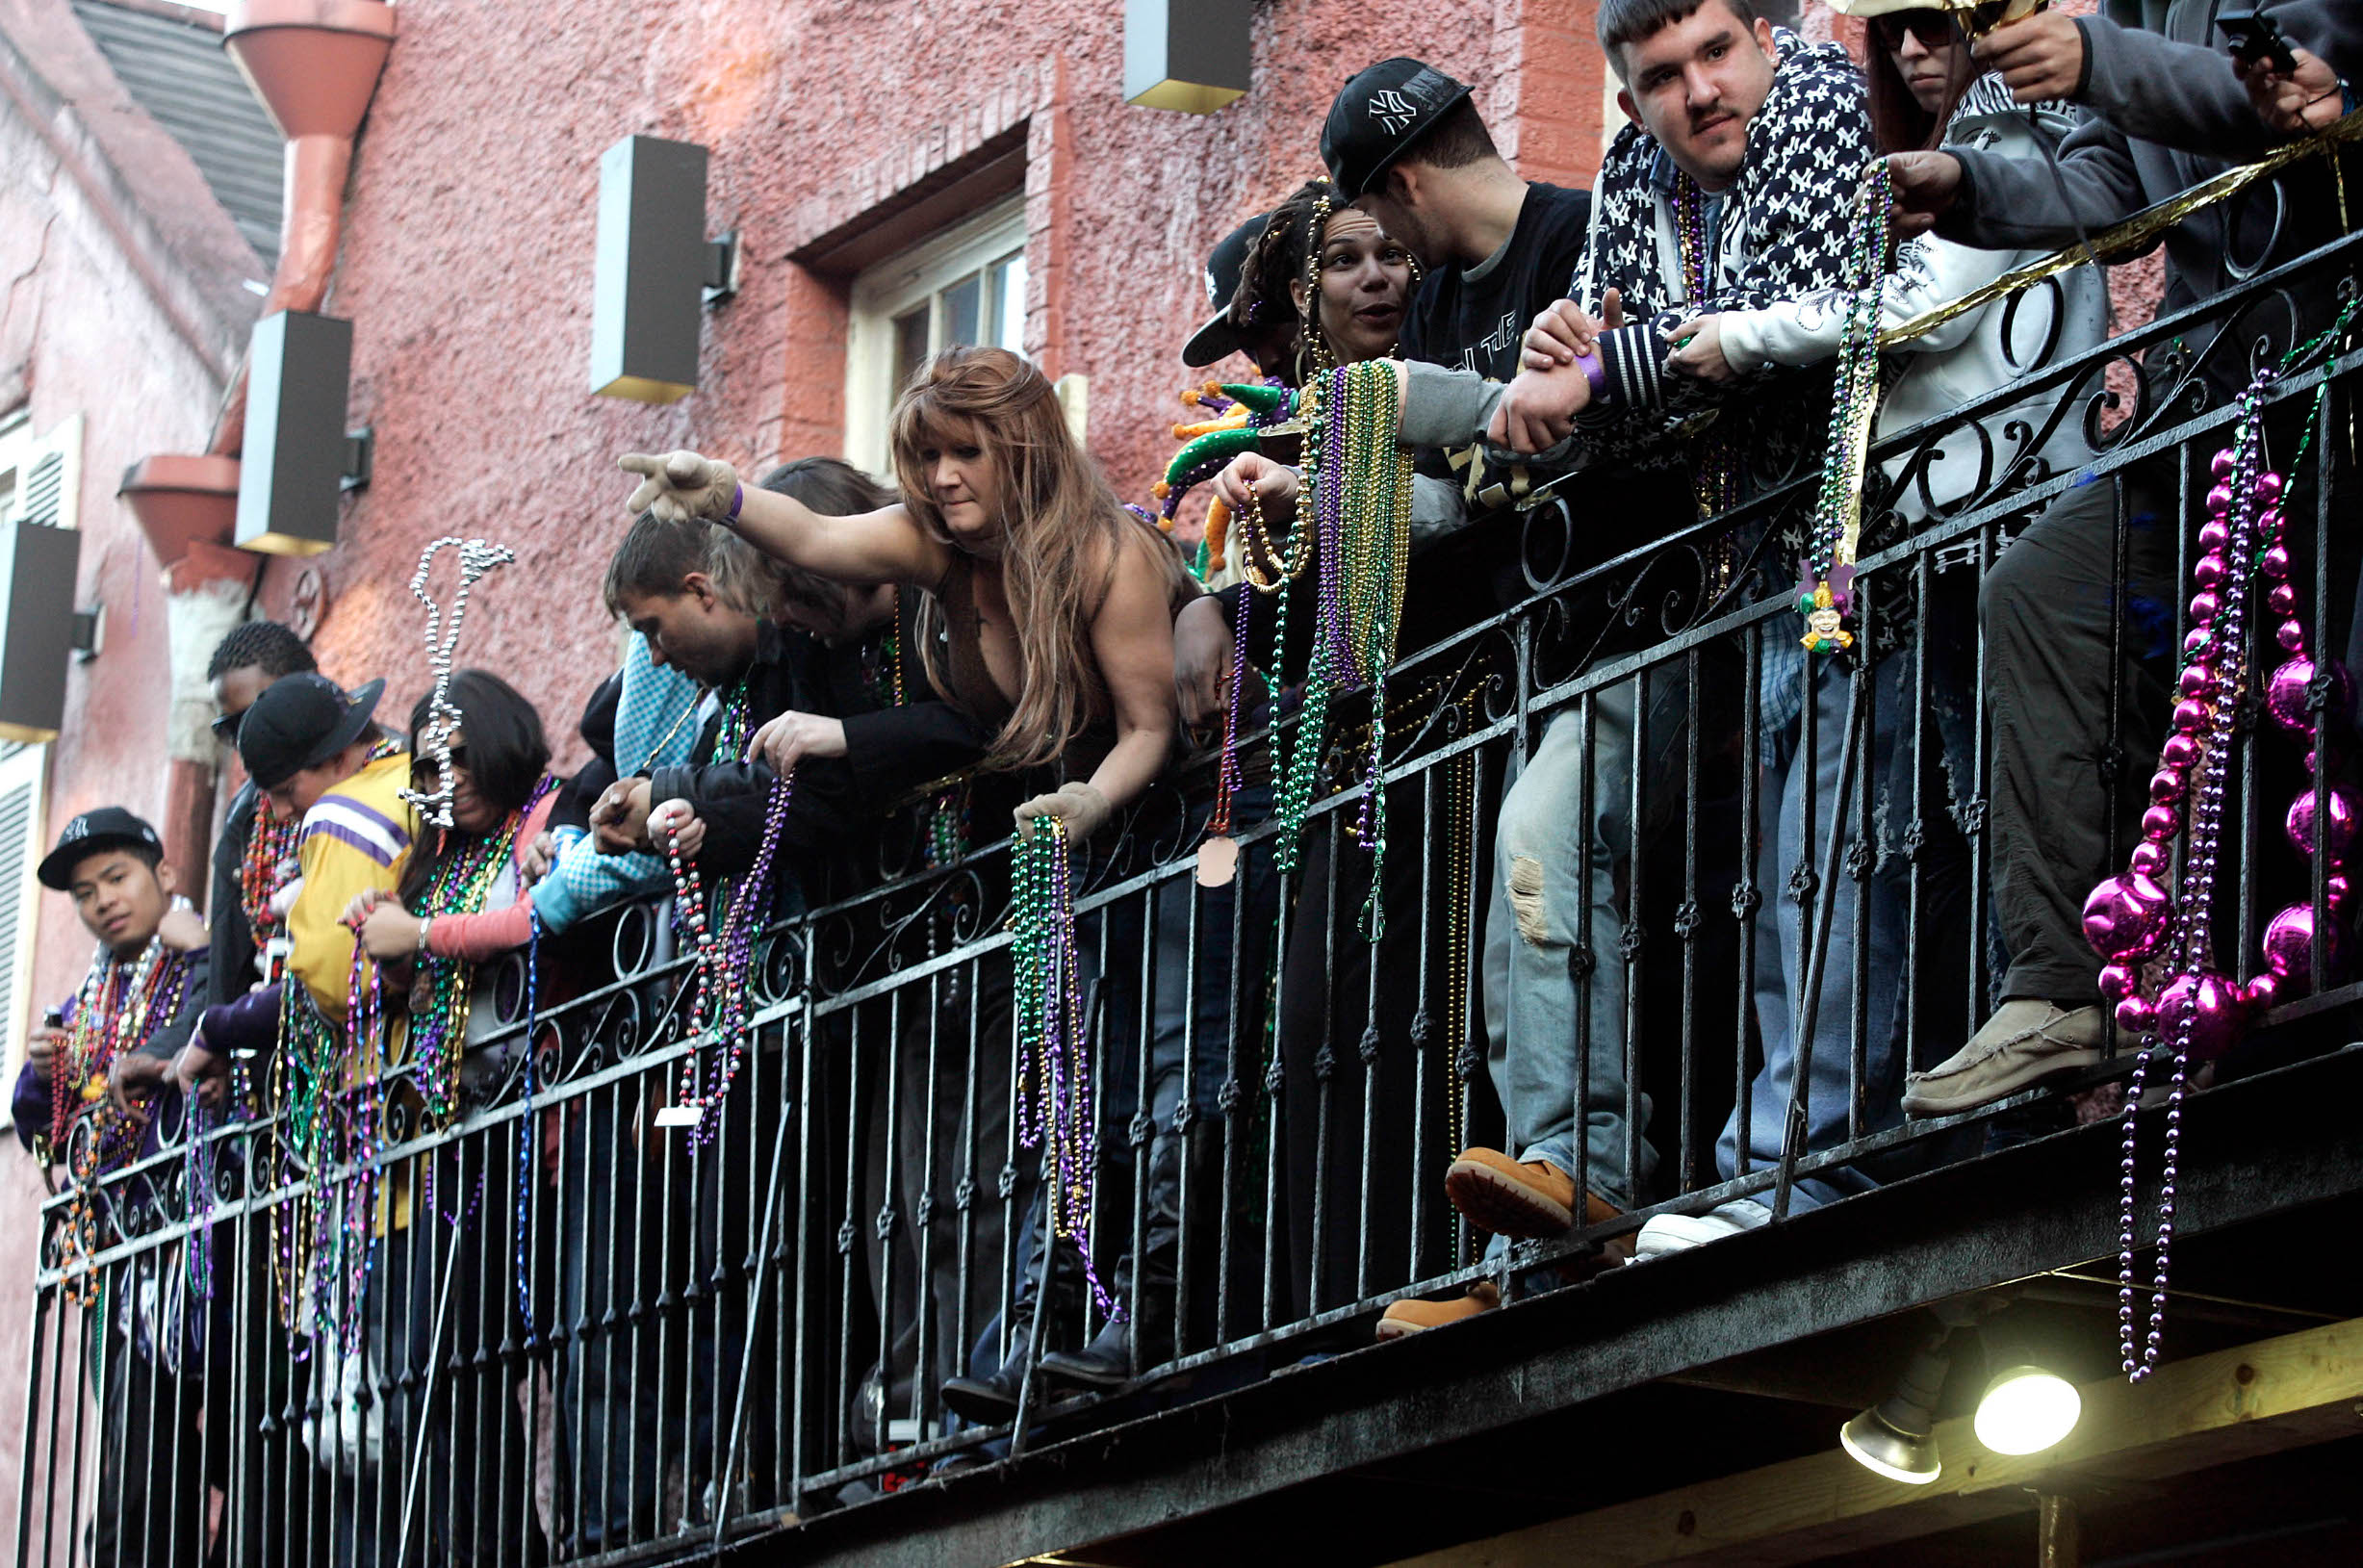 NEW ORLEANS - FEBRUARY 16: Revelers watch over Bourbon Street in the French Quarter from a balcony during Mardi Gras day on February 16, 2010 in New Orleans, Louisiana. The annual Mardi Gras celebration ends at midnight, when the Catholic Lenten season begins on Ash Wednesday and ends on Easter Sunday. (Photo by Patrick Semansky/Getty Images)